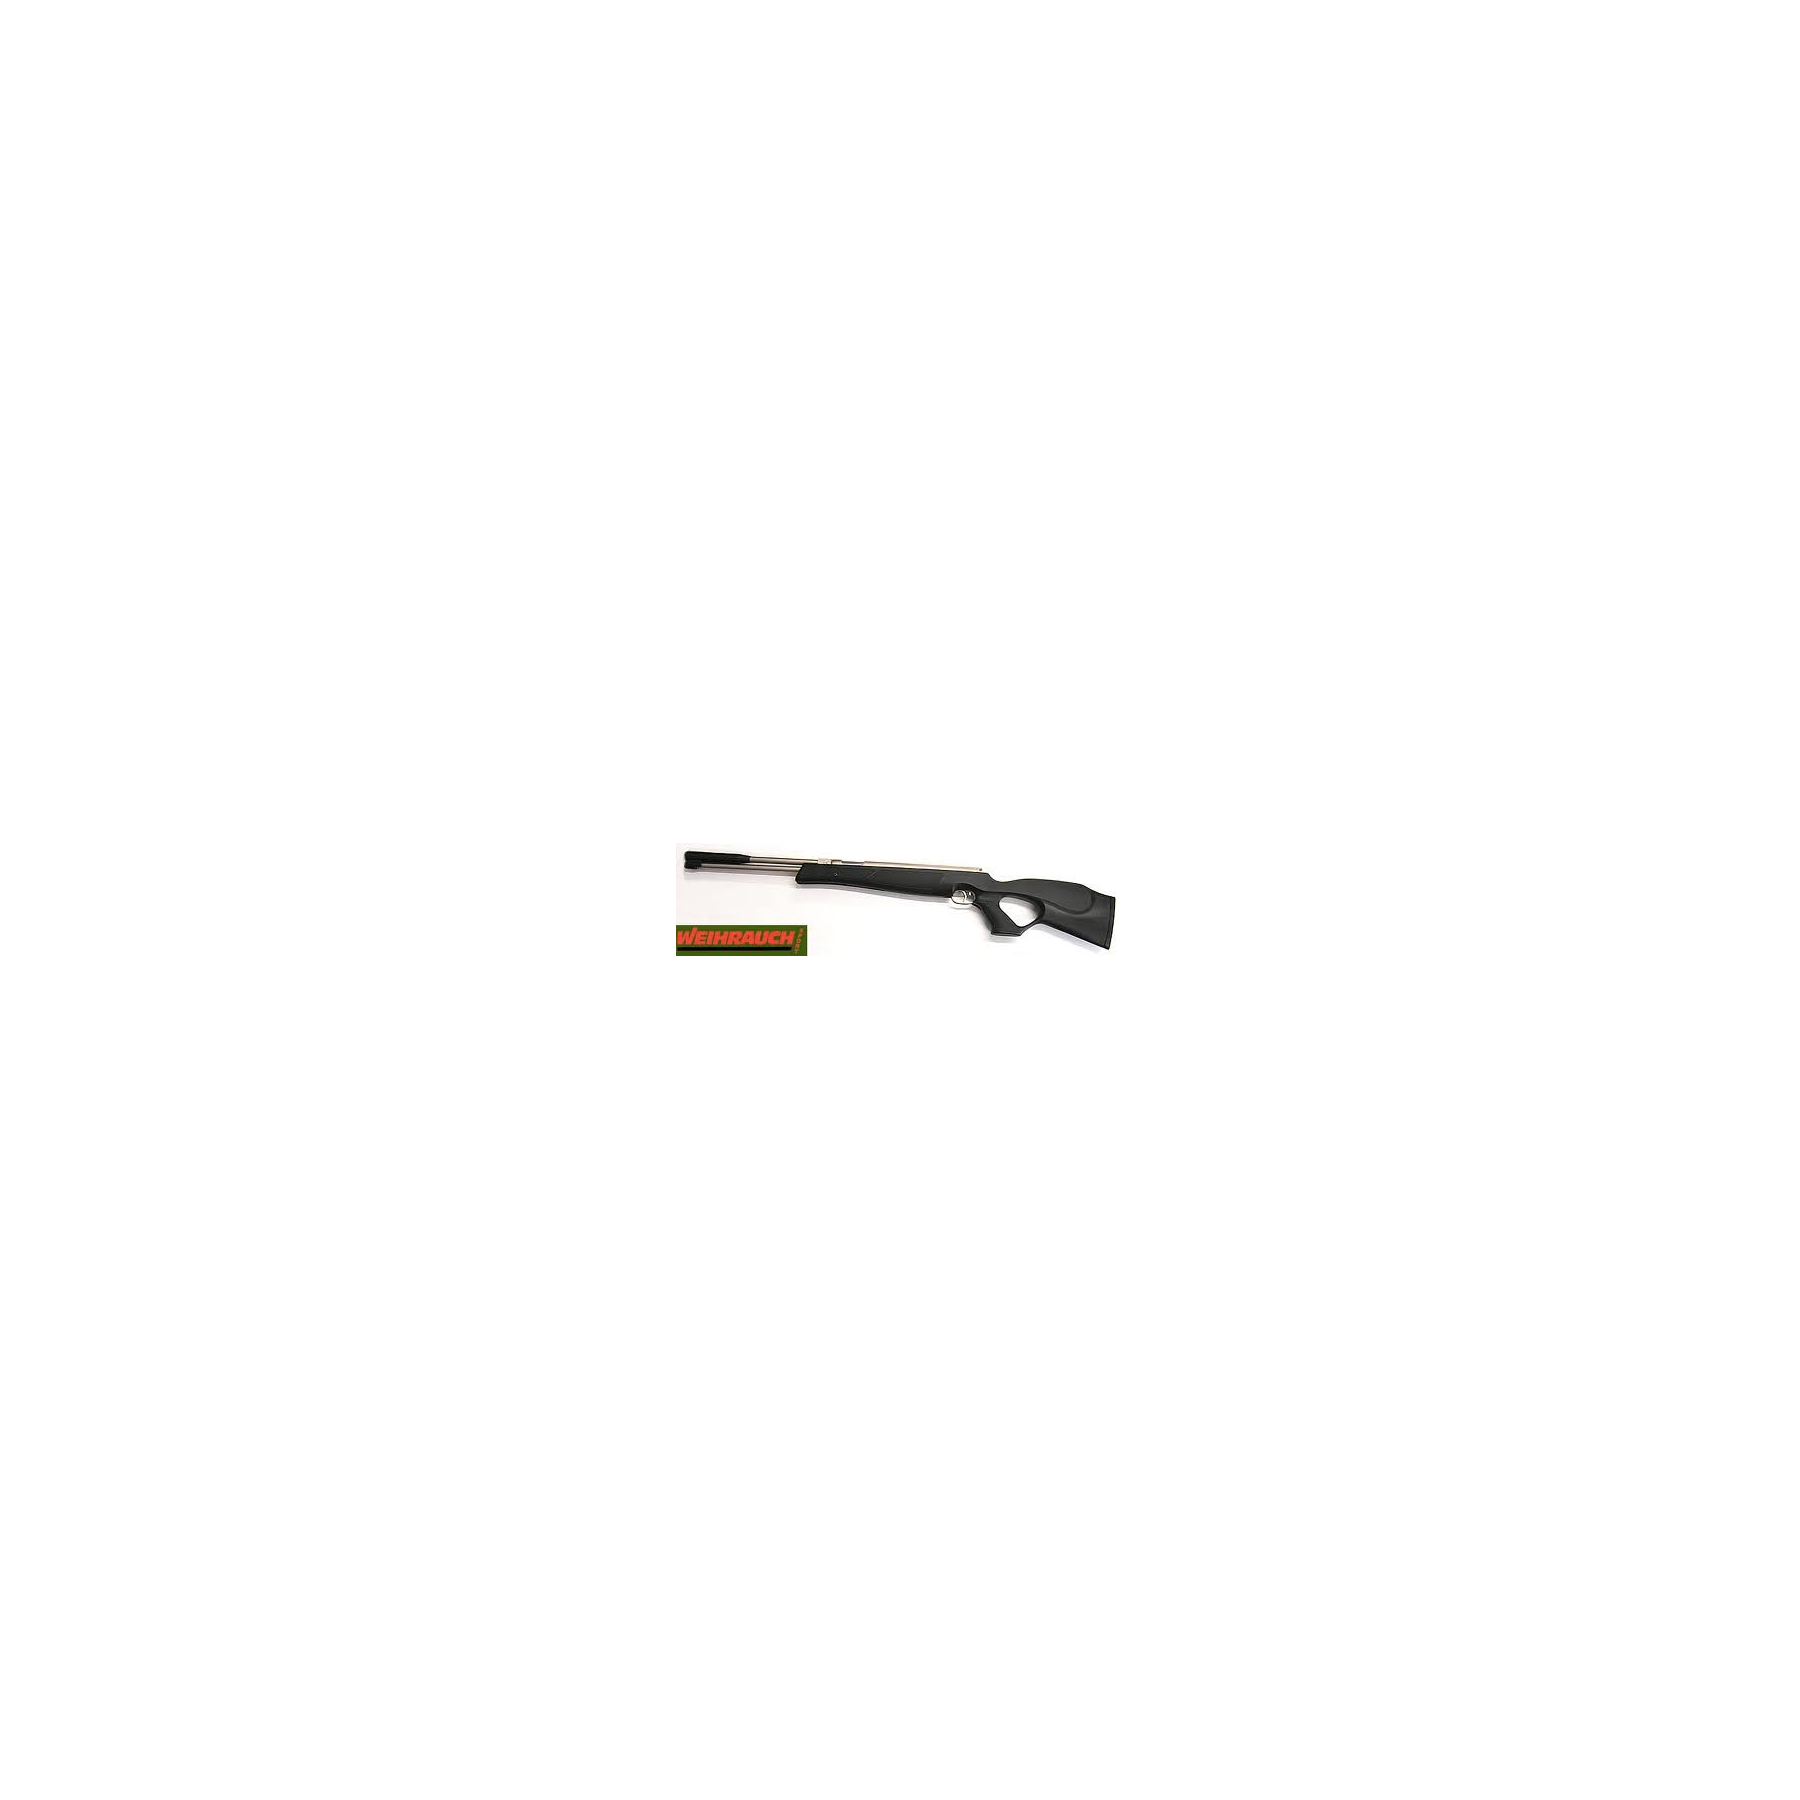 WEIHRAUCH HW97K BLACK LINE STAINLESS 4.50MM 21 JOULES